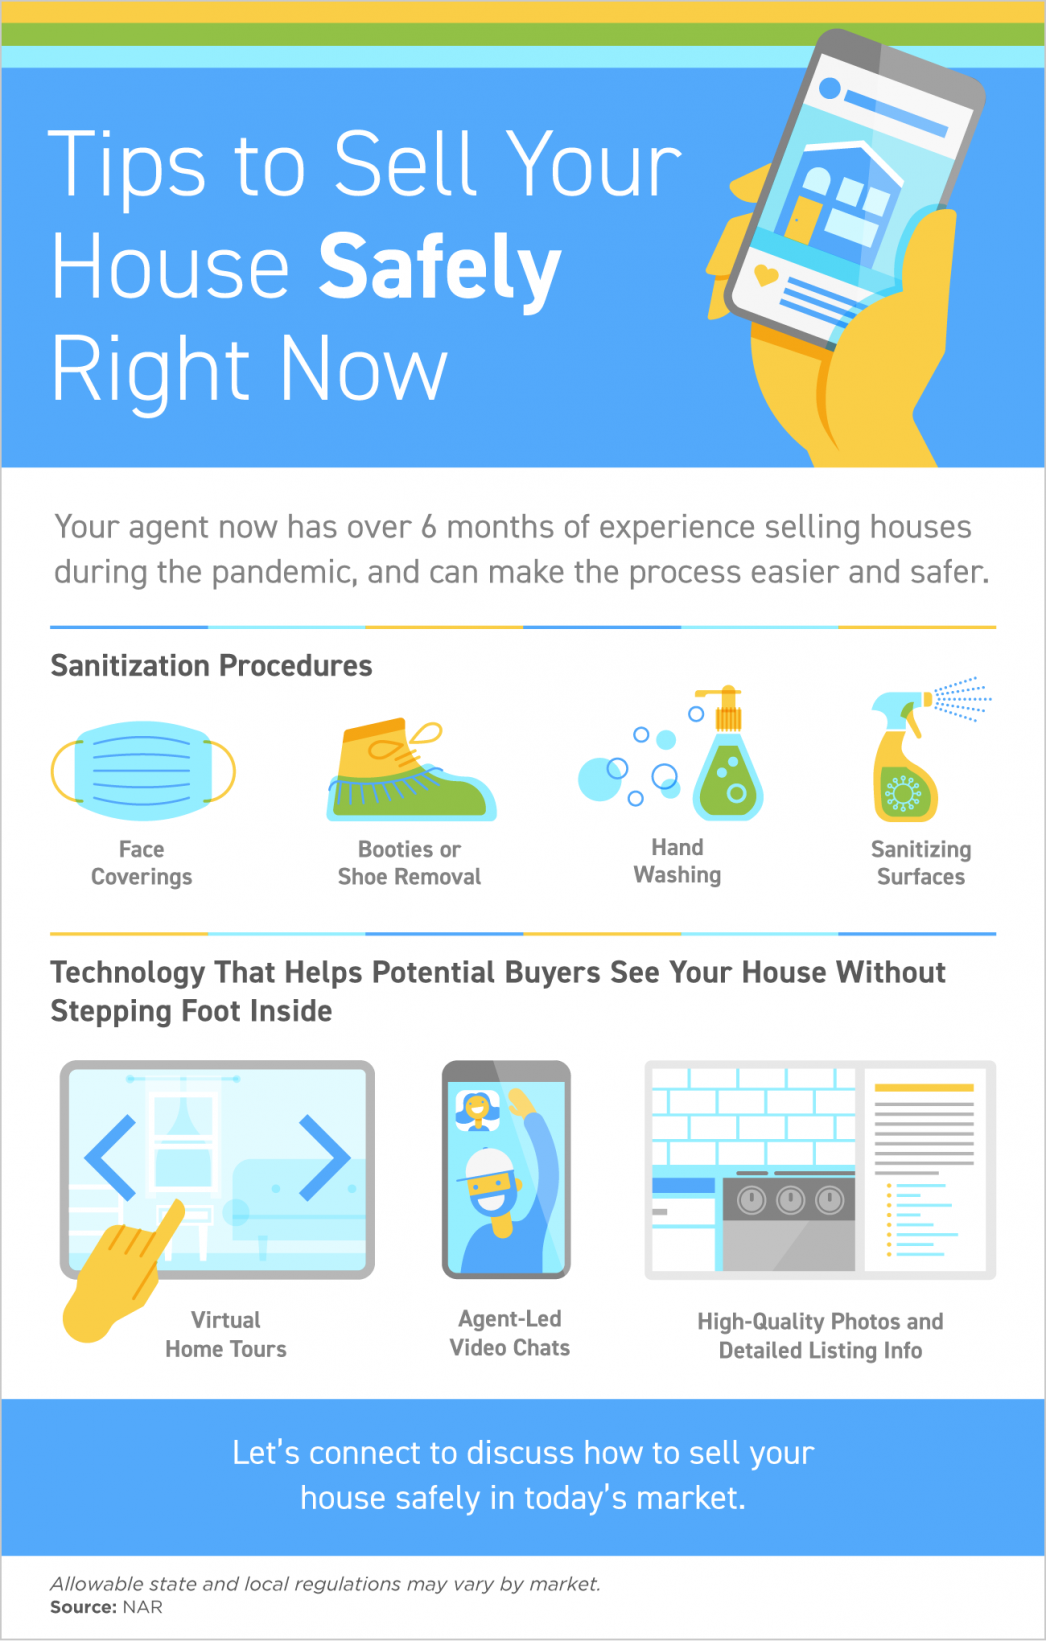 Tips to Sell Your House Safely Right Now [INFOGRAPHIC] | Maine Real Estate Blog | Faontaine Famly - The Real Estate Leader | Auburn, Scarborough, Maine